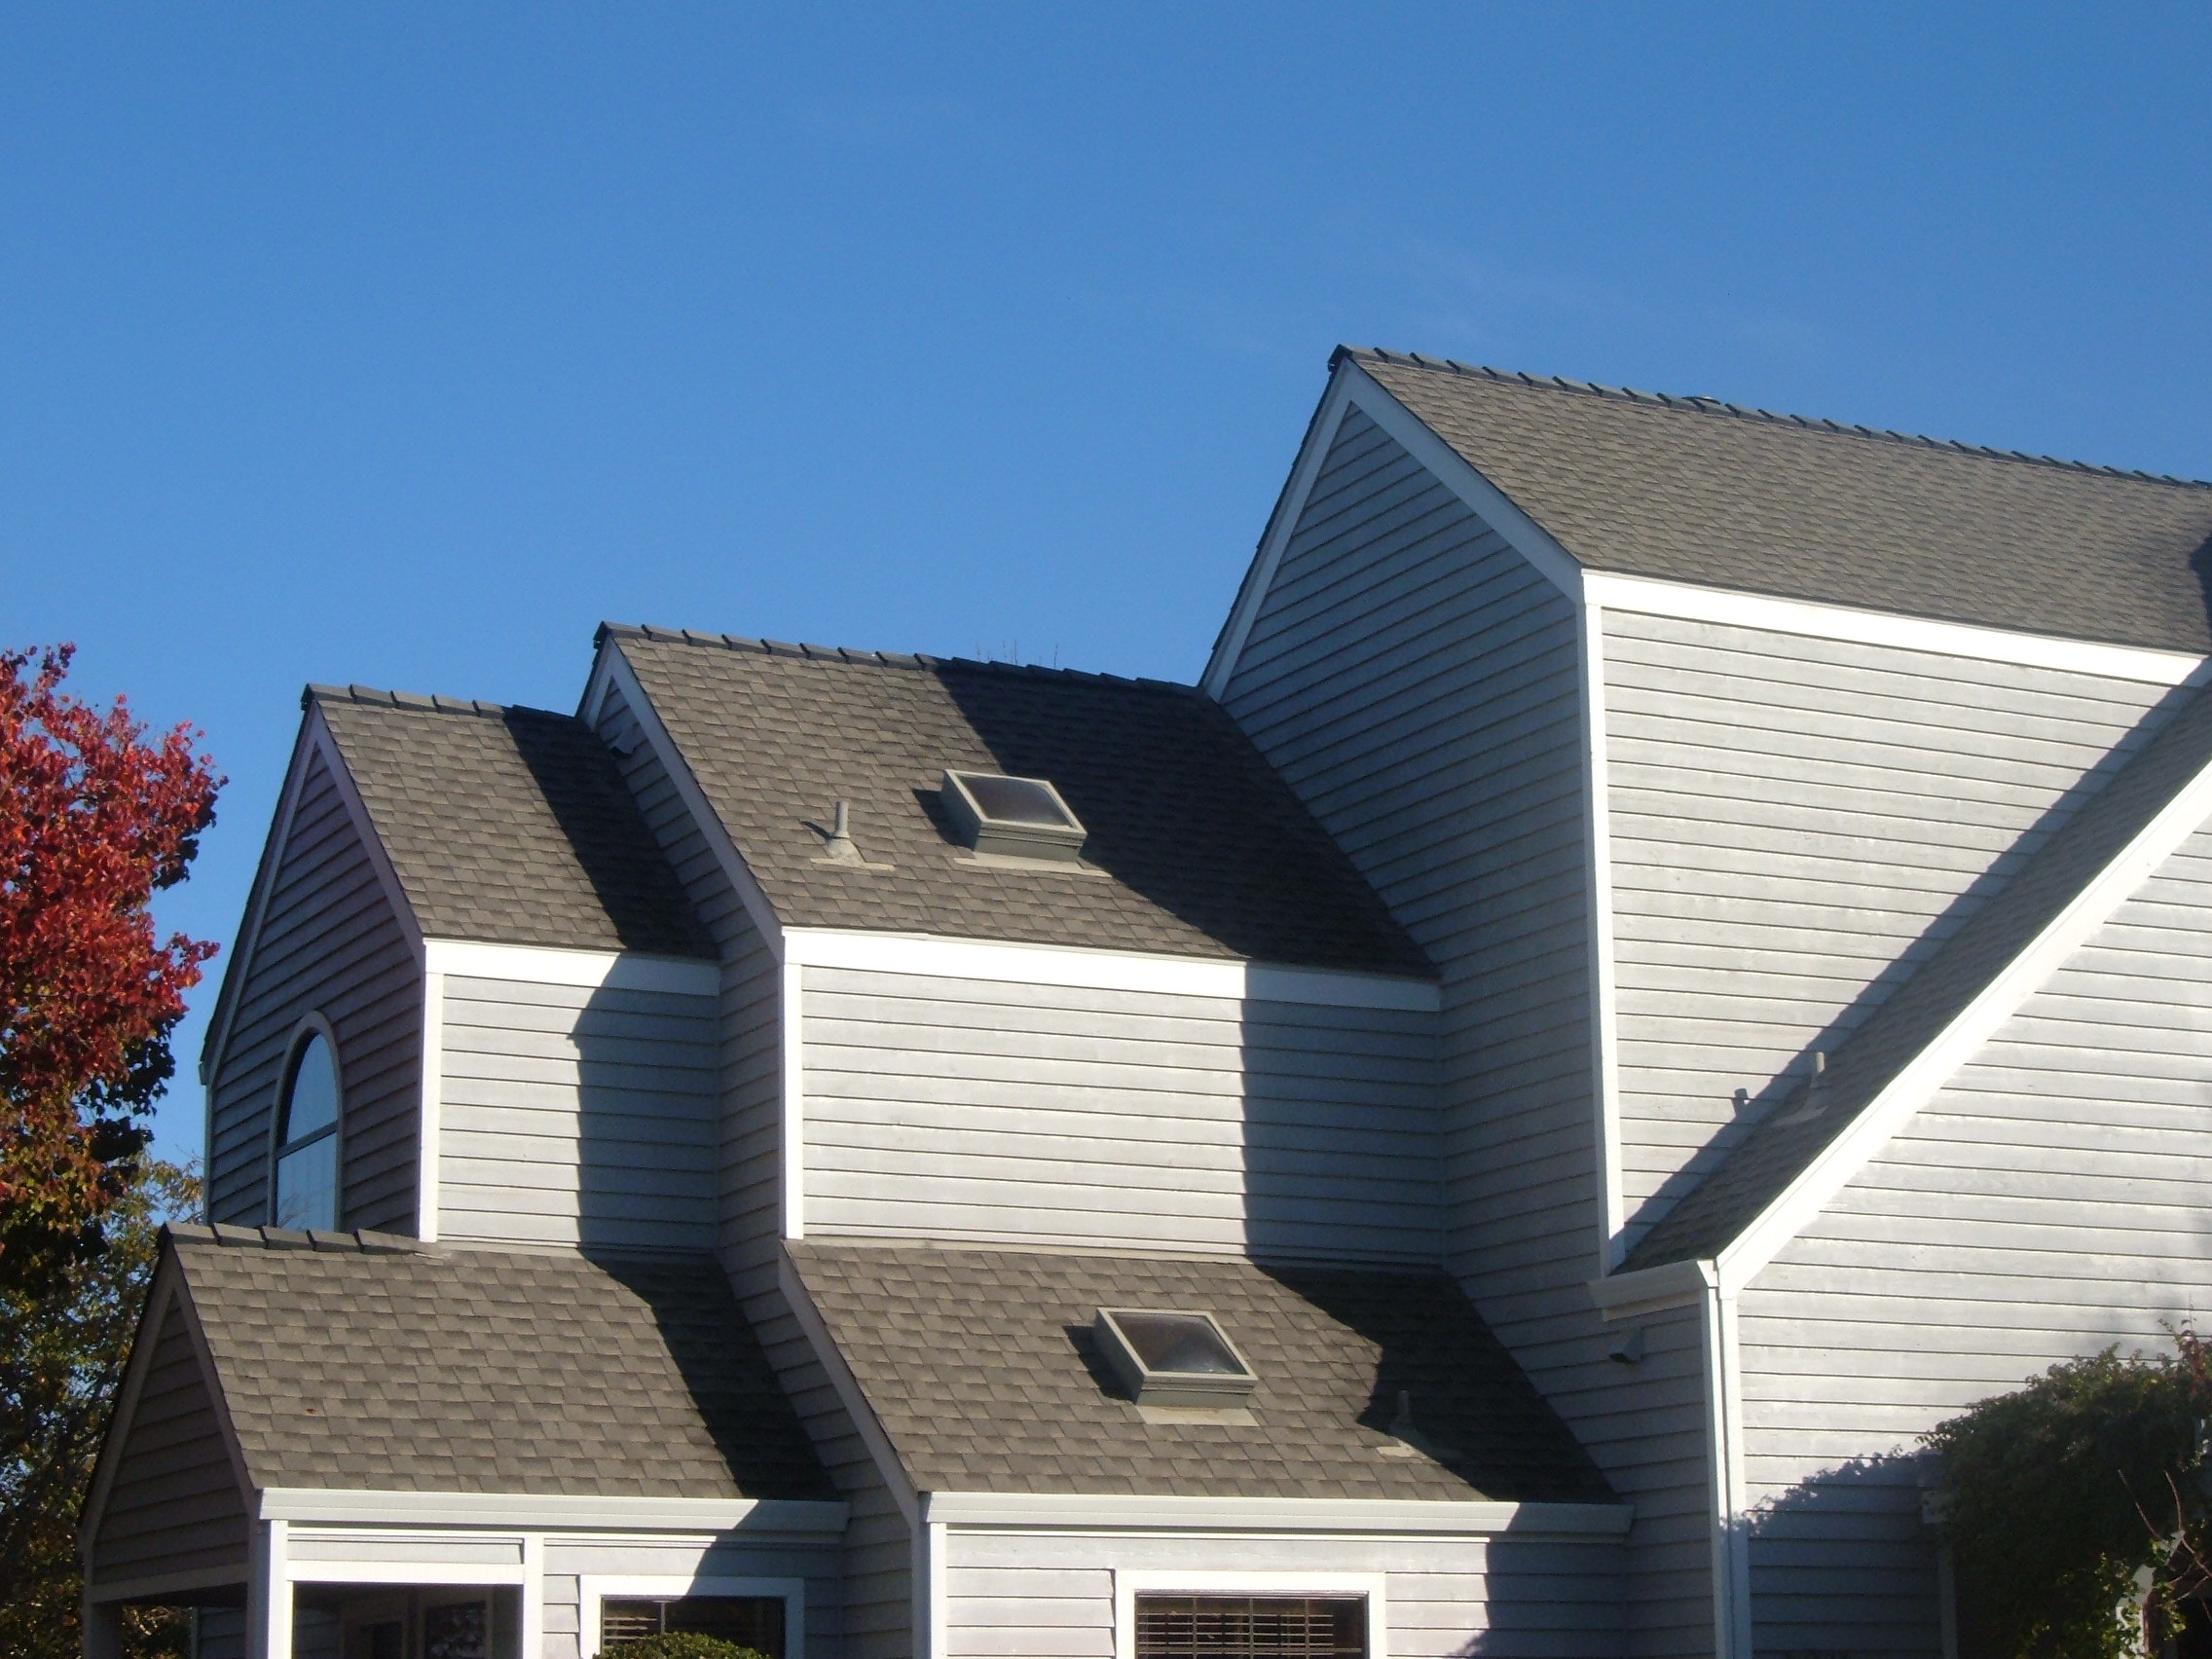 Completed Composition Shingle Roof Project by Ved's Roofing of Yuba City, CA.